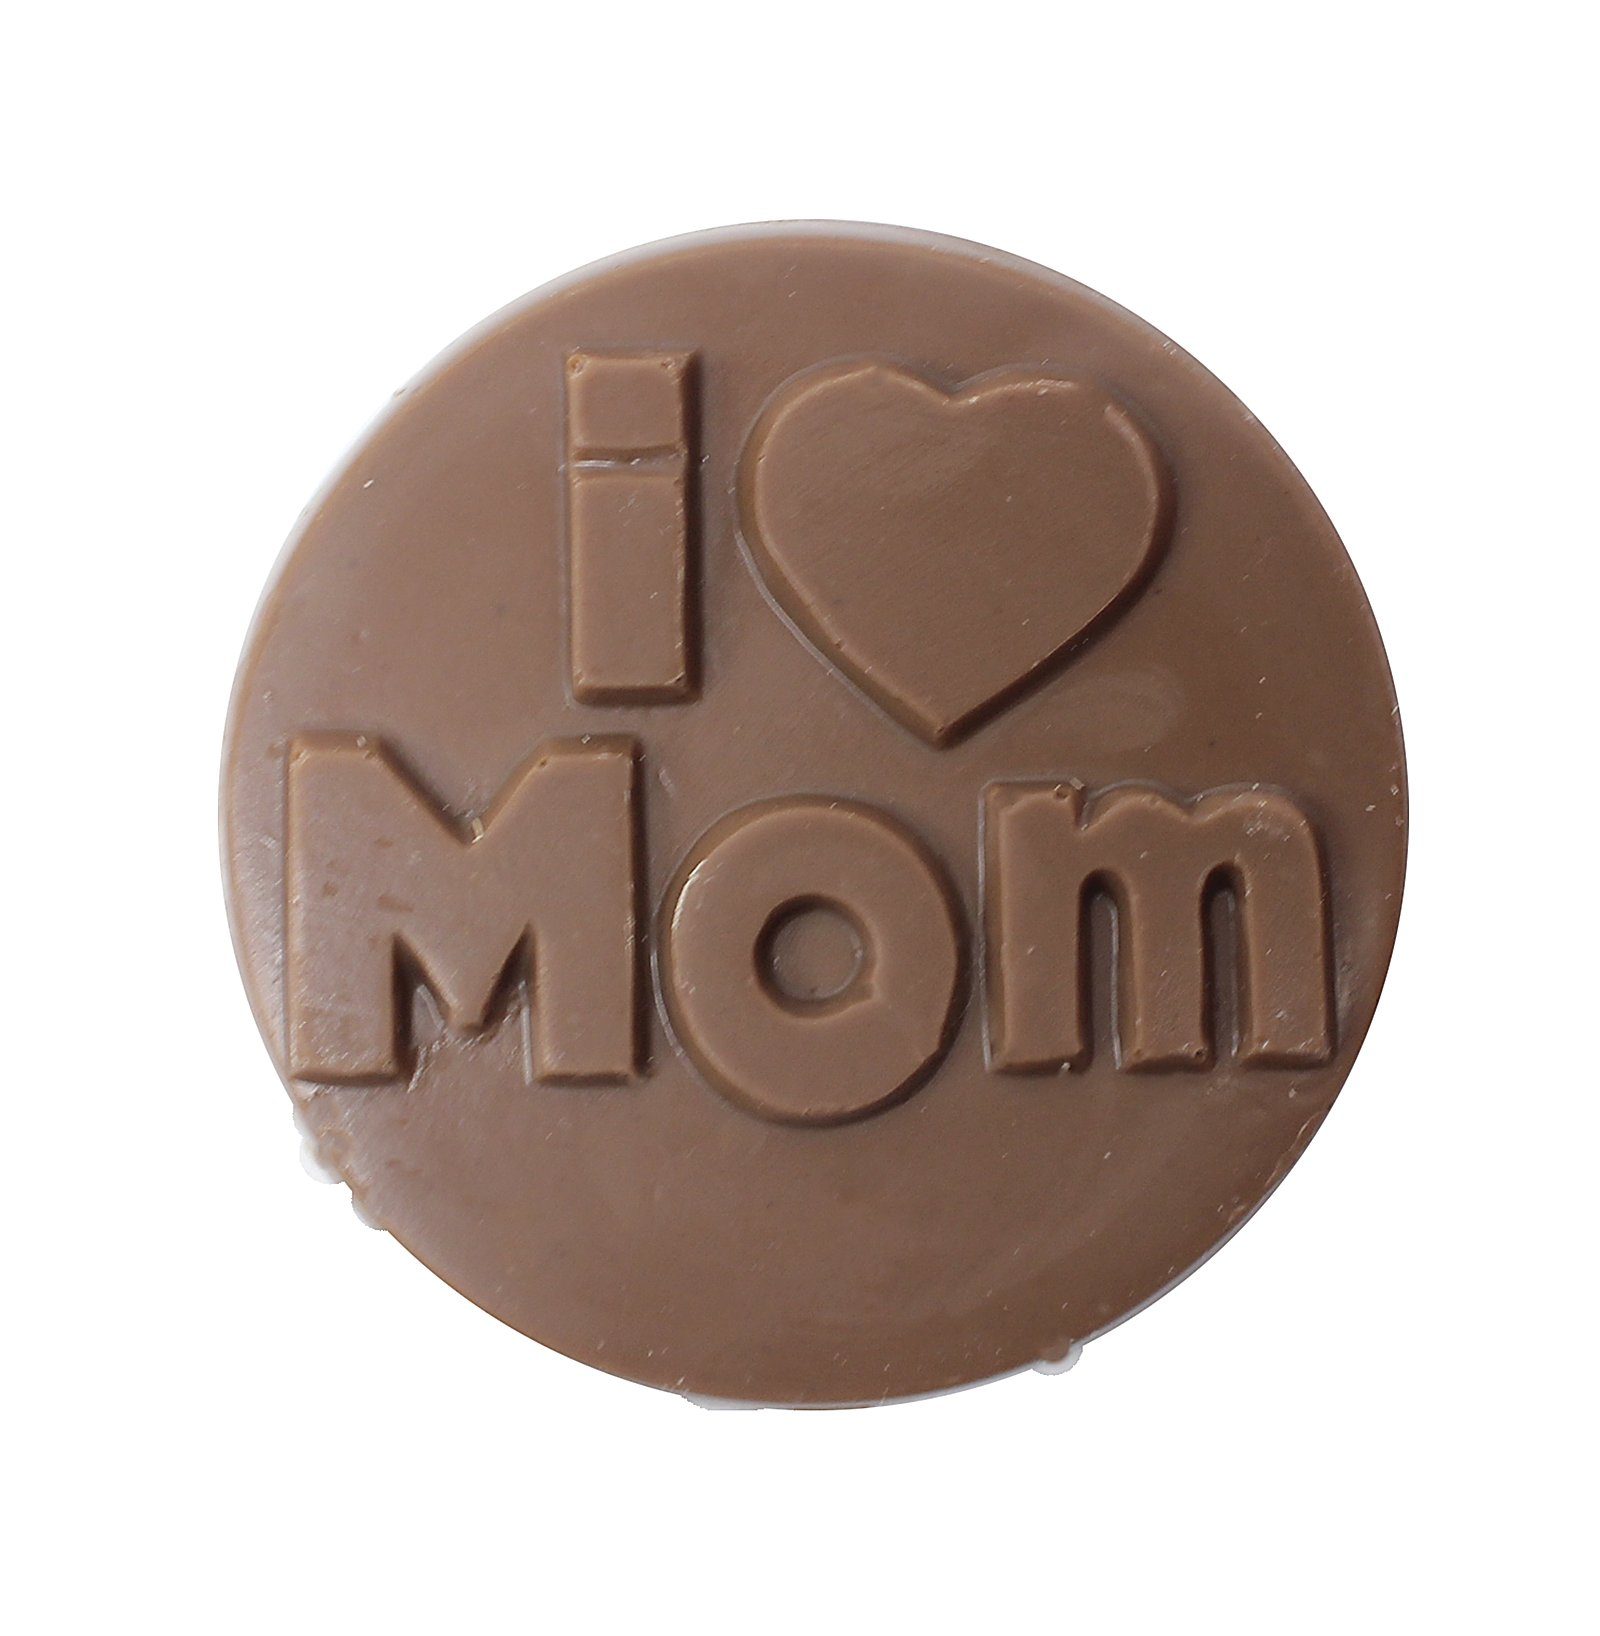 I love you mom - Sarris Candies Mother's Day chocolates are available at Sarris Candies in Canonsburg.